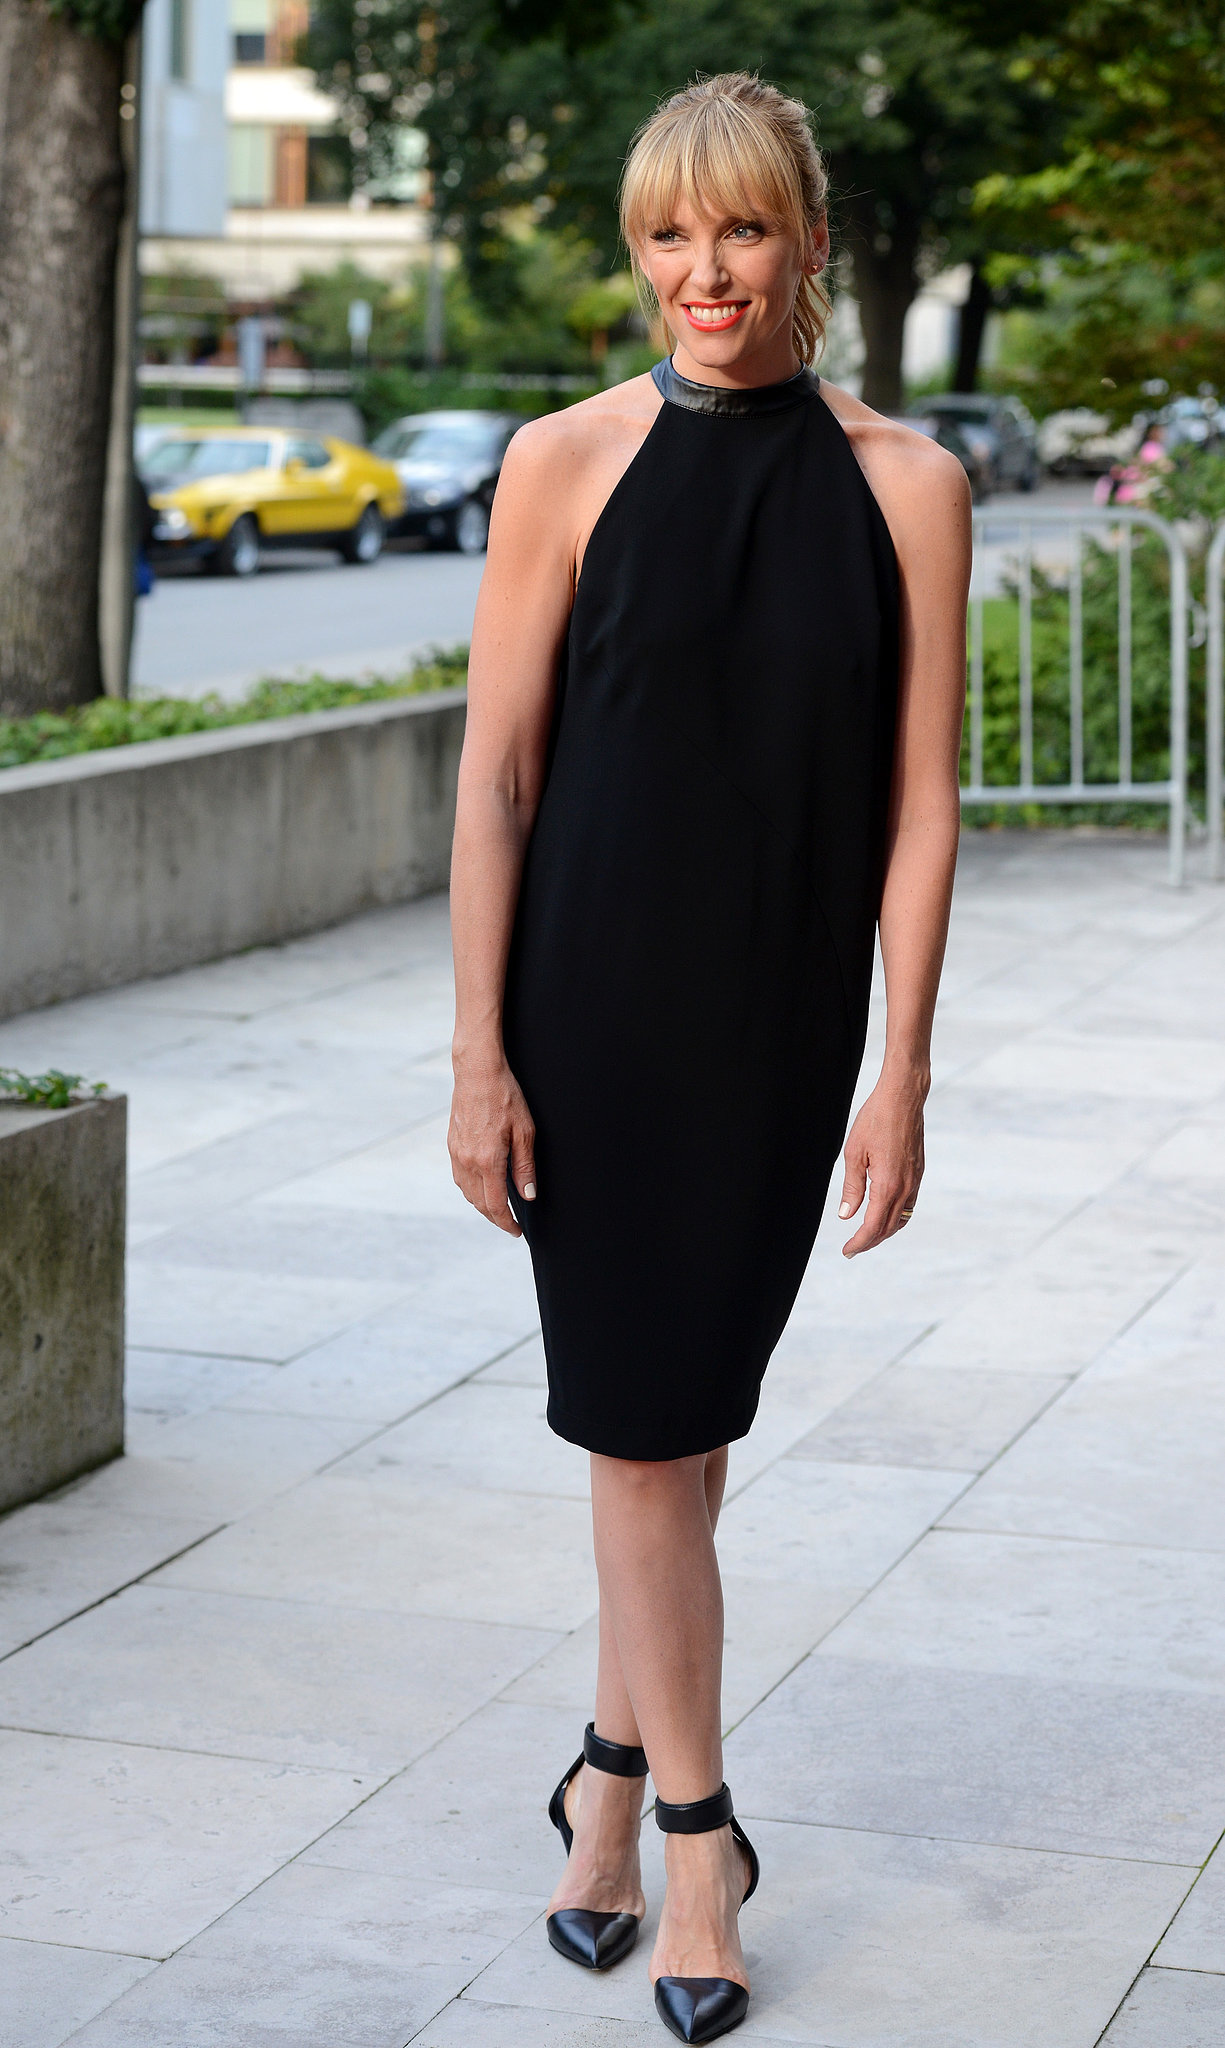 Toni Colette looked stunning at the Lucky Them event.